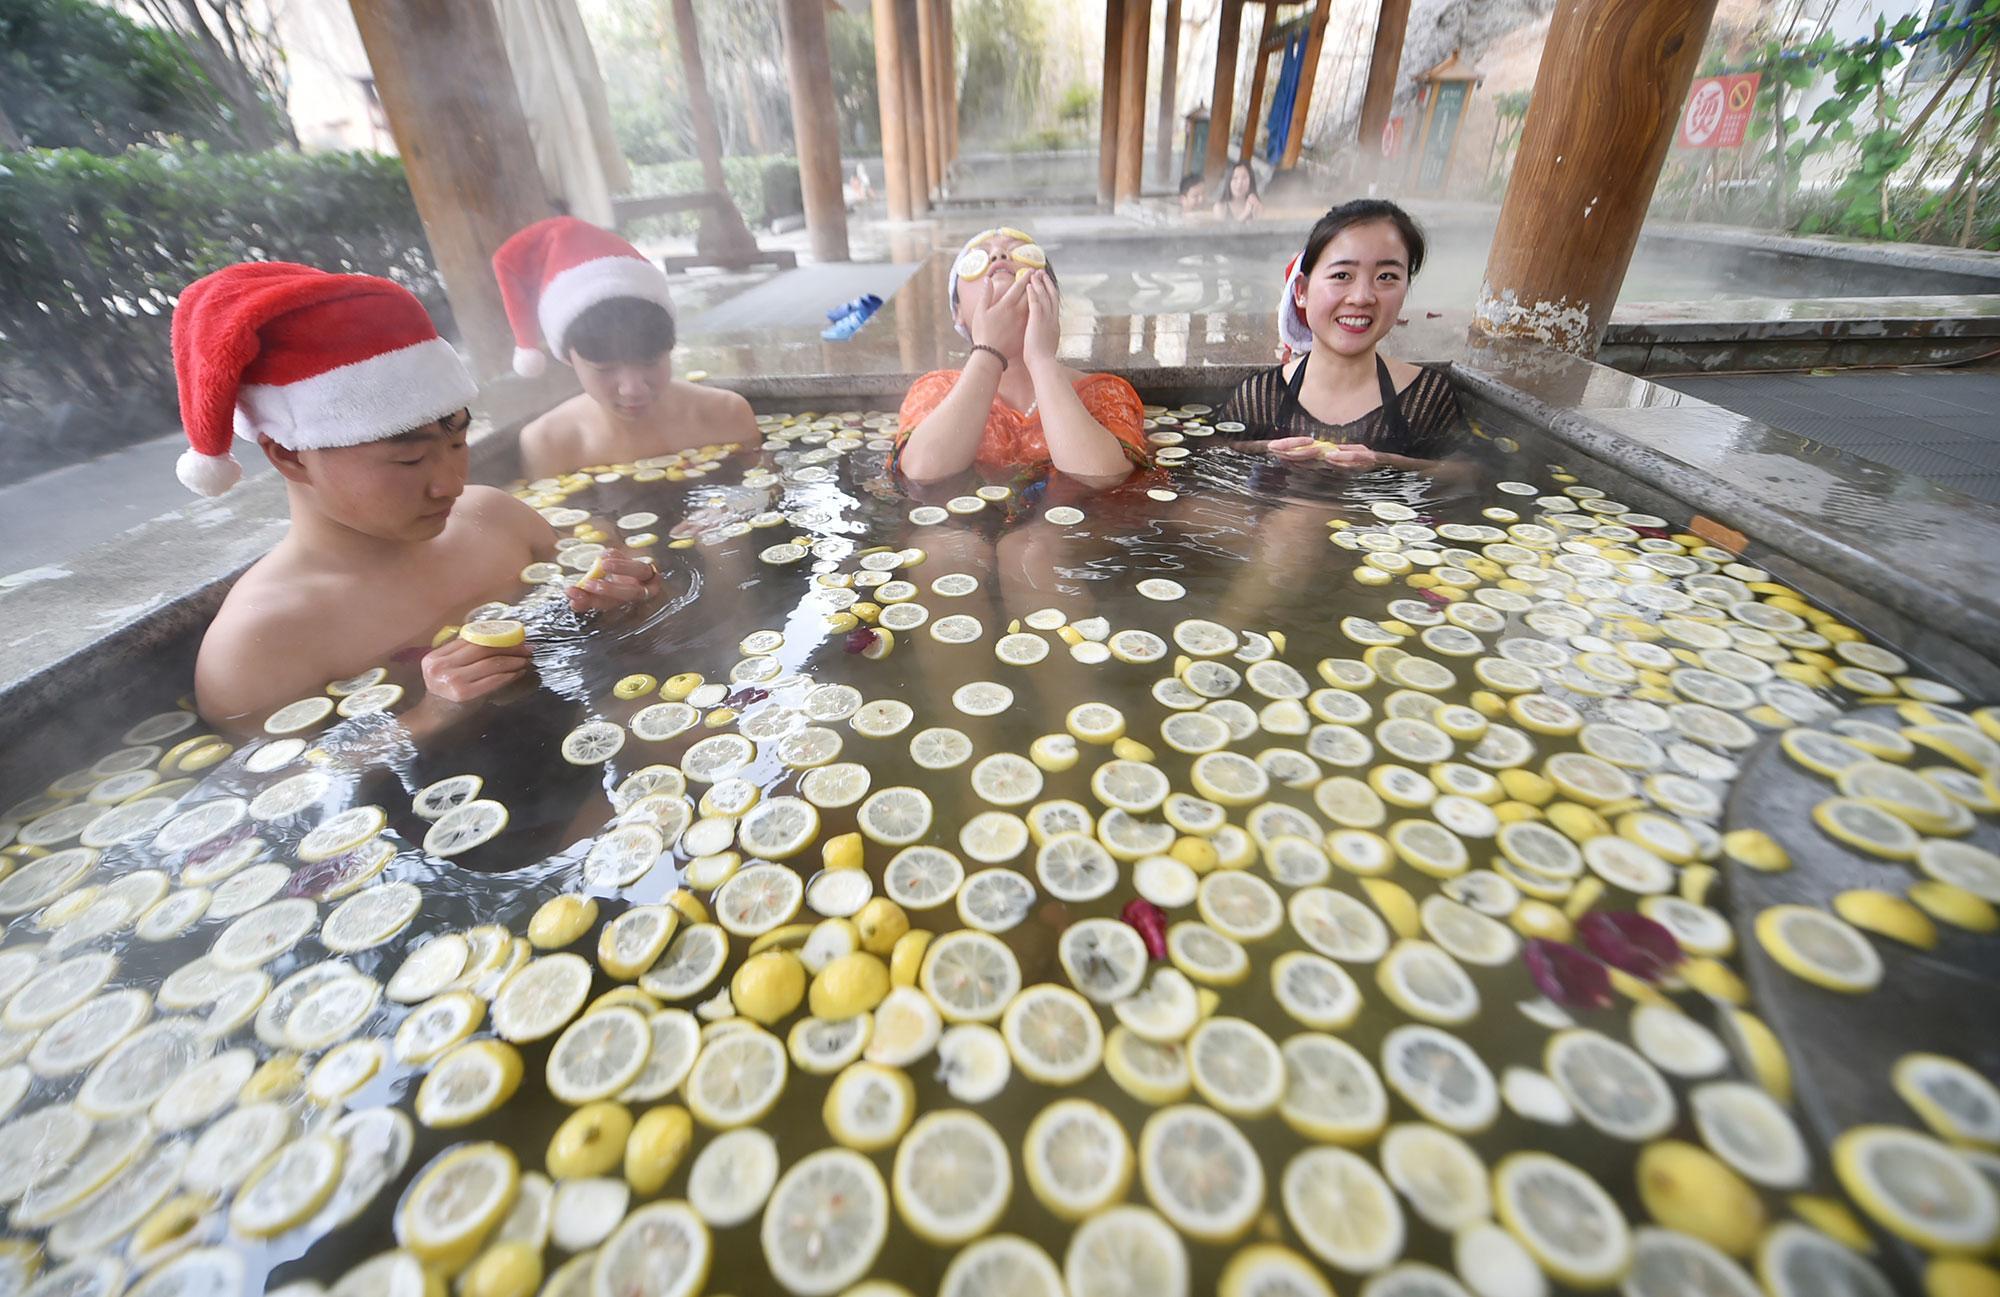 <p>People wearing Santa hats bath with lemon slices at a hot spring center during the Christmas holiday on Dec. 24, 2016 in Luoyang, Henan Province of China. Reportedly taking fruit bath keeps skin in good condition. (Photo: VCG via Getty Images) </p>